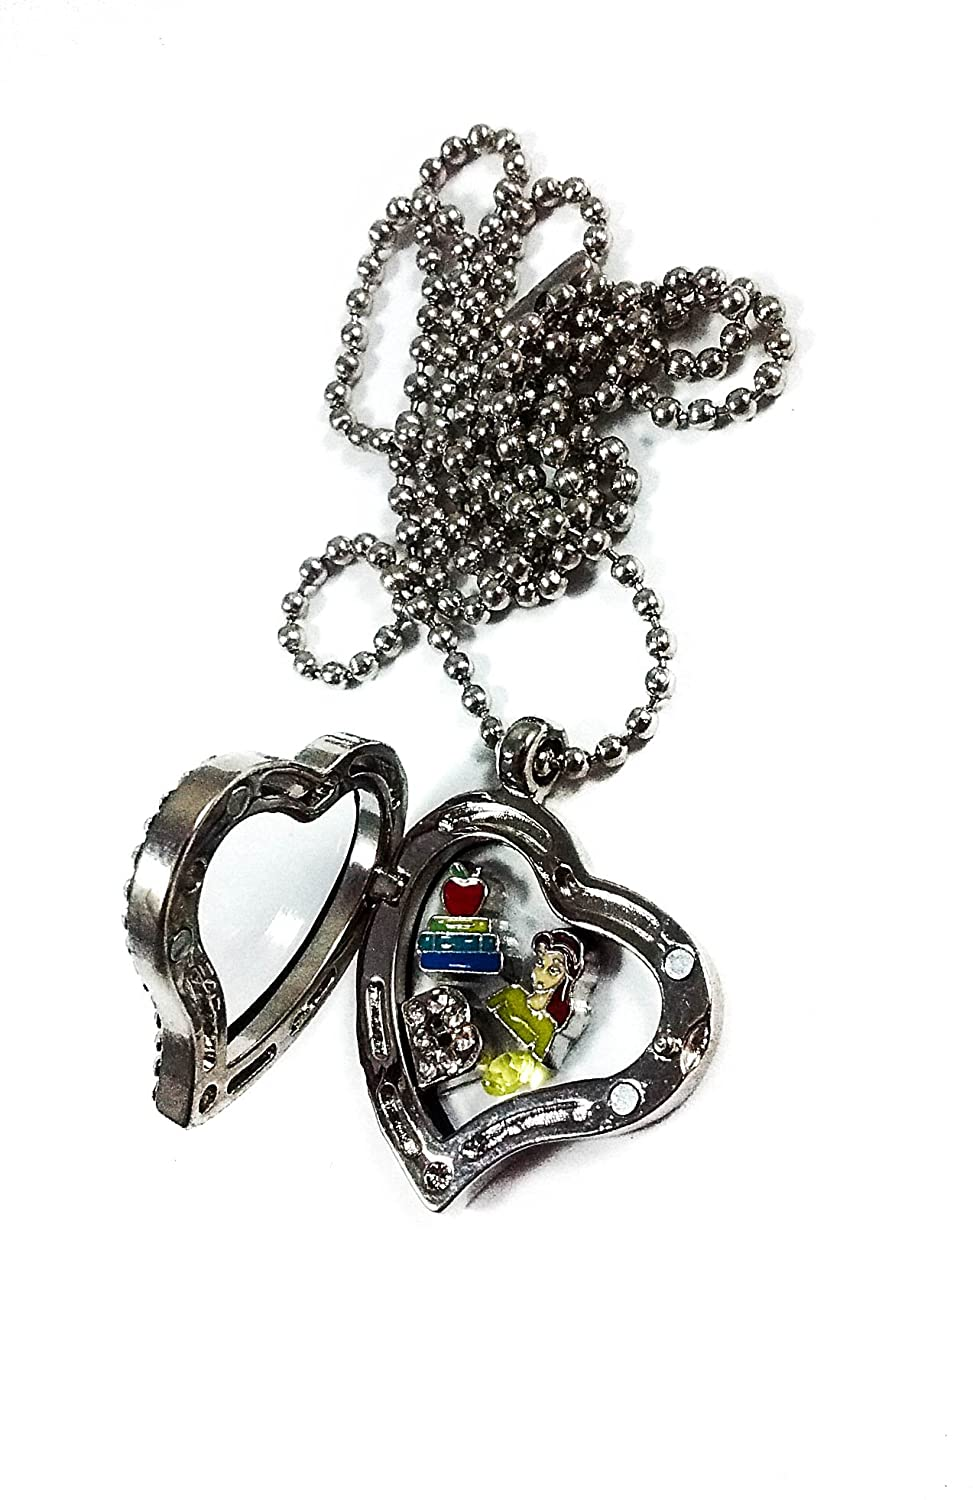 Disney Princess Belle By Living Memory Lockets for Less Charm Necklace Beauty and the Beast